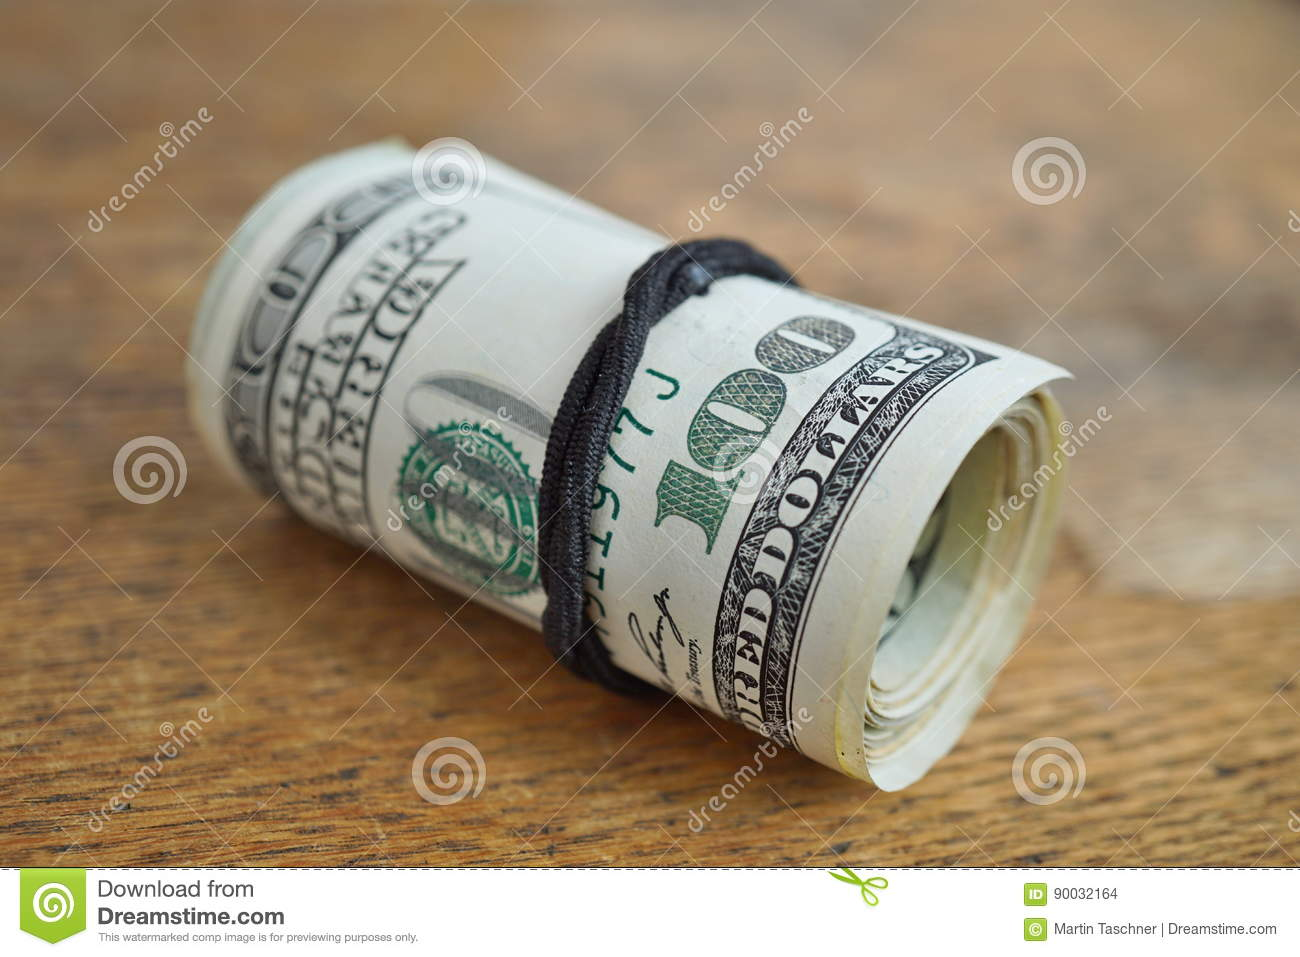 Symbol for usd choice image symbols and meanings macro detail of a green roll of american currency usd american royalty free stock photo biocorpaavc buycottarizona Gallery